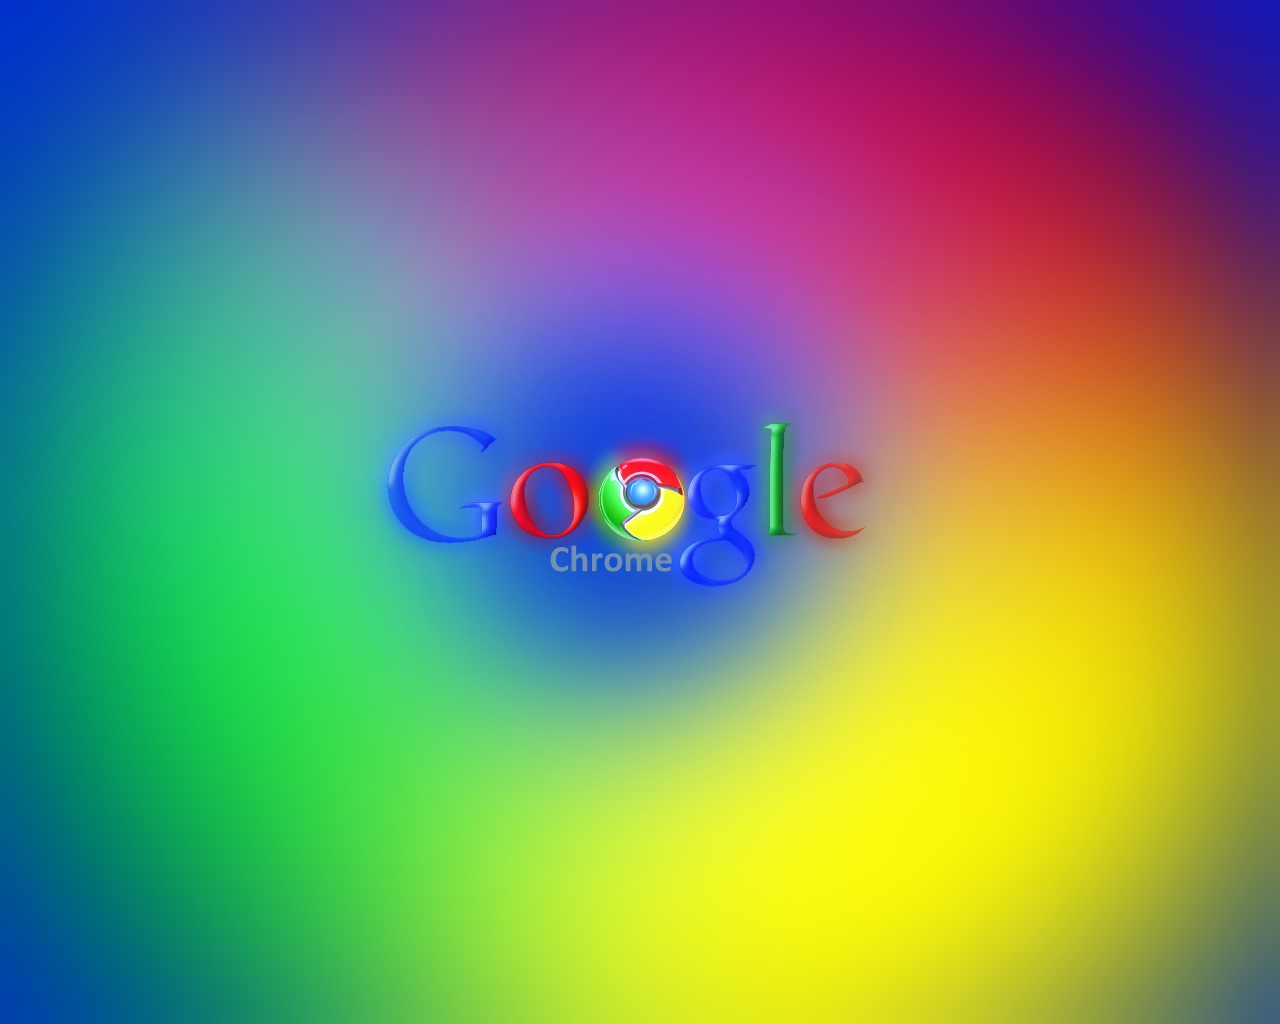 Free Download Wallpaper Google Themes Download Google Chrome